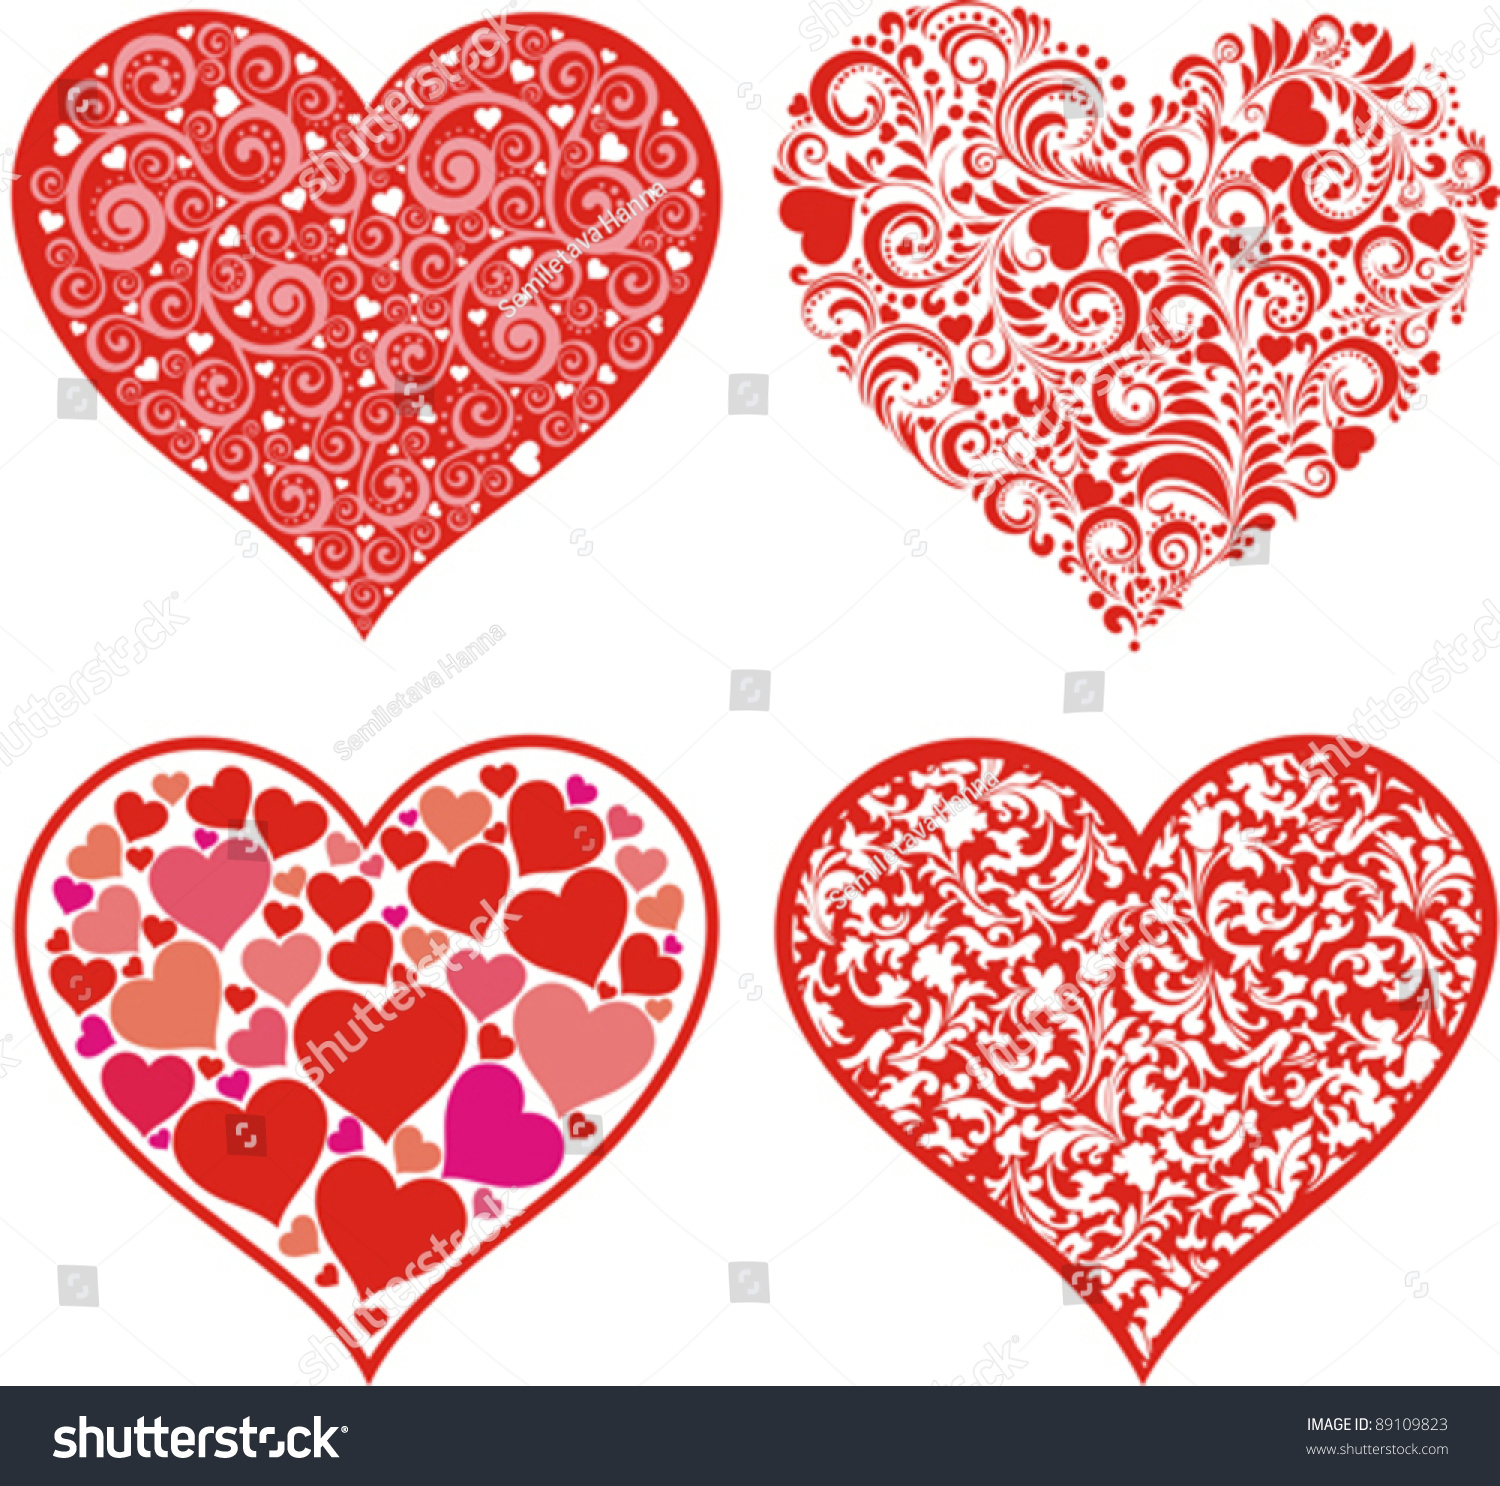 set hearts red valentine hearts floral stock vector 89109823